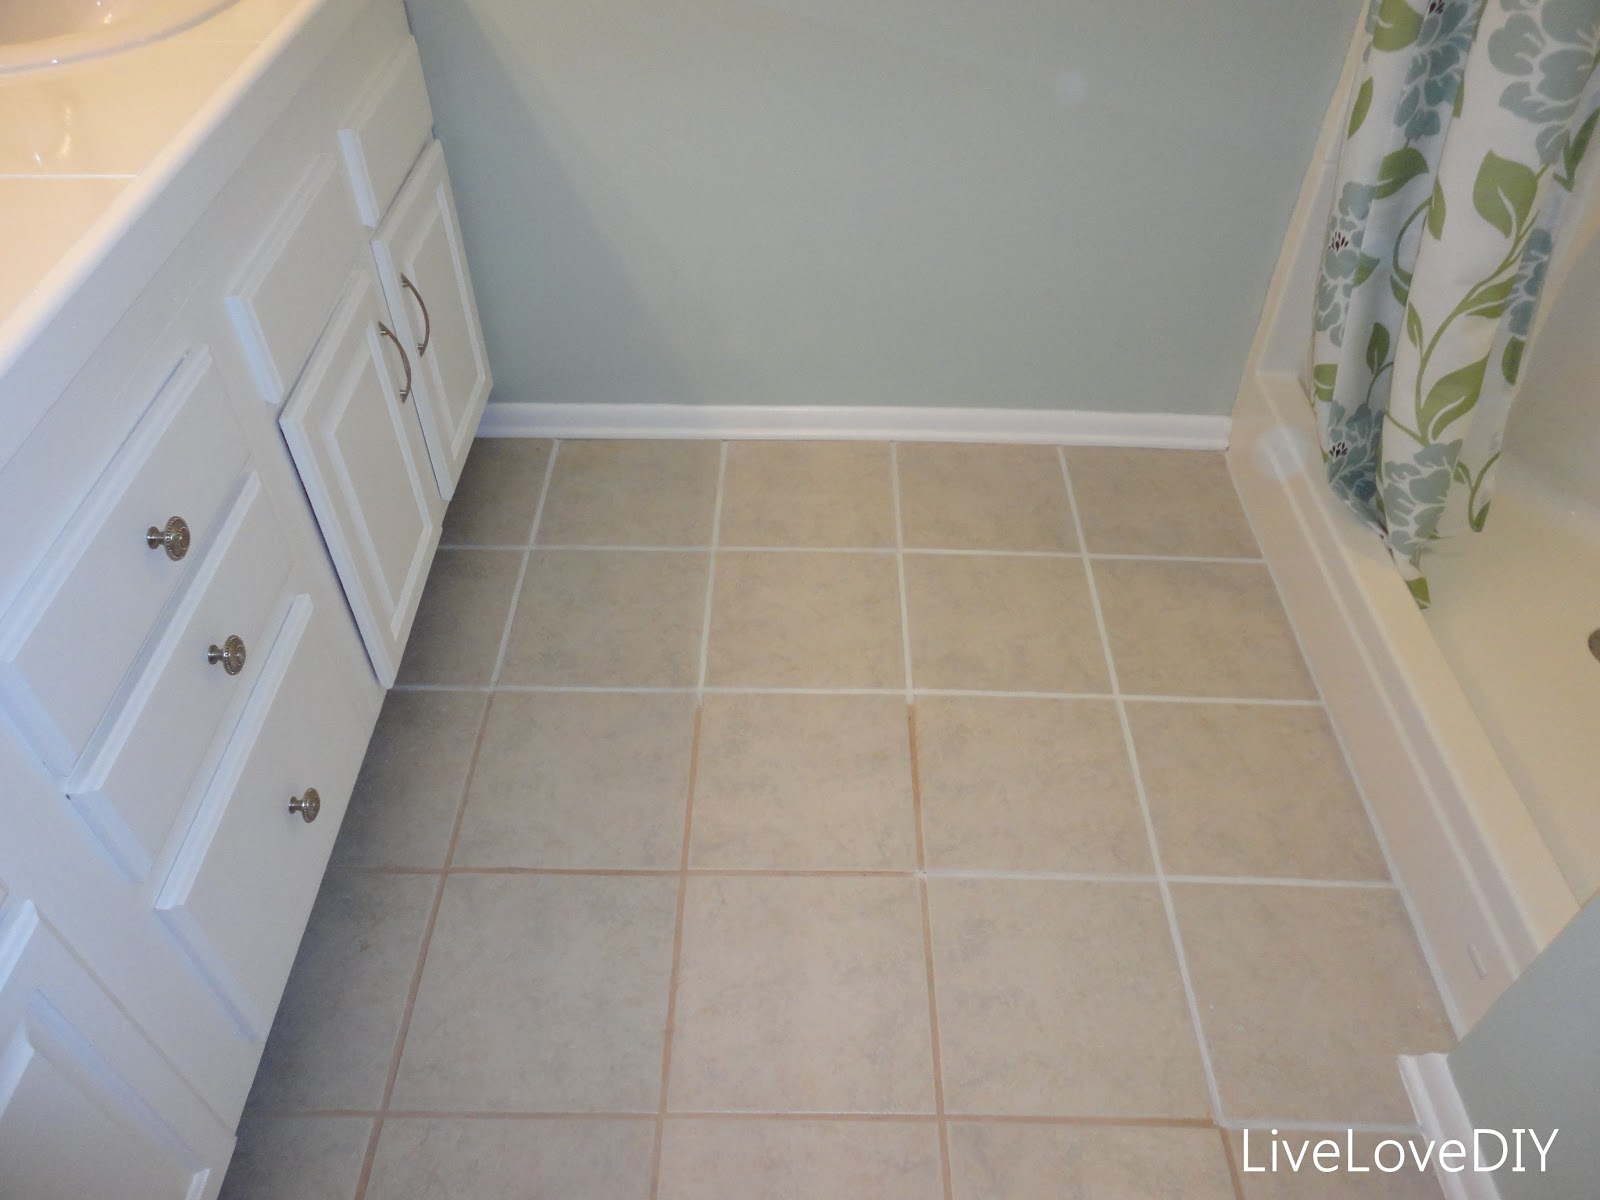 To. LiveLoveDIY  How To Restore Dirty Tile Grout